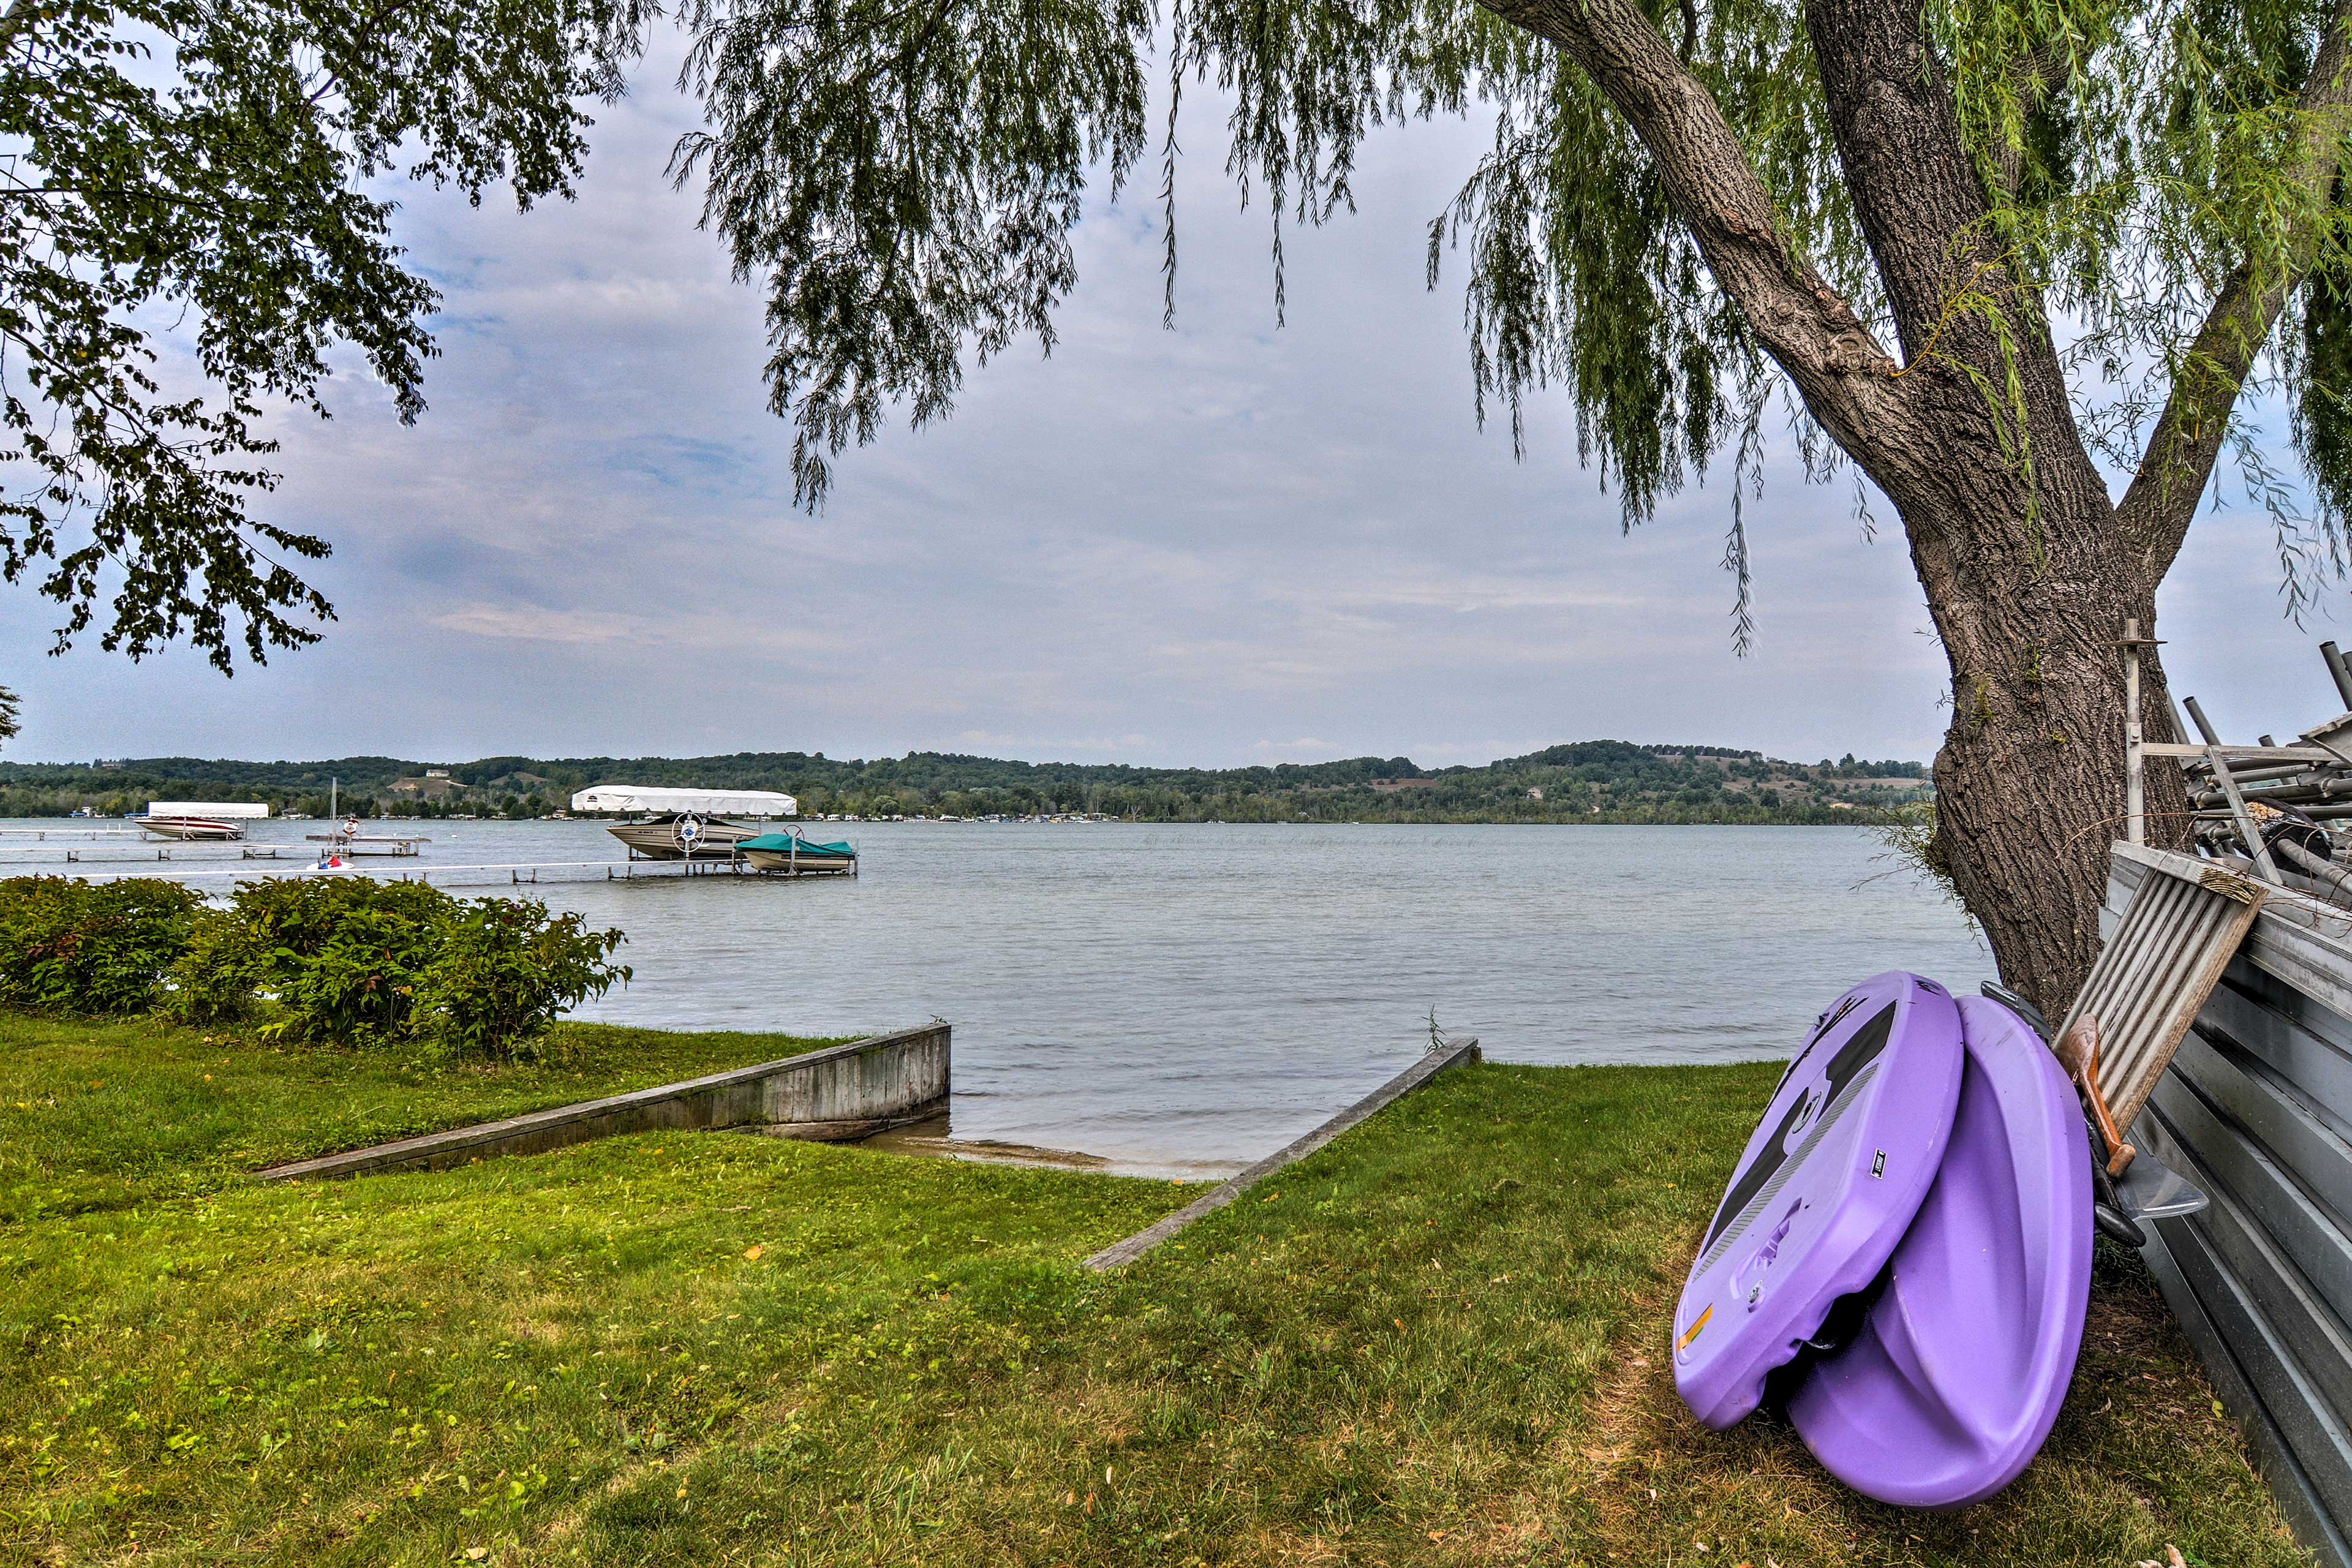 There are 2 paddle boards and a small boat launch along the 150-foot shoreline.